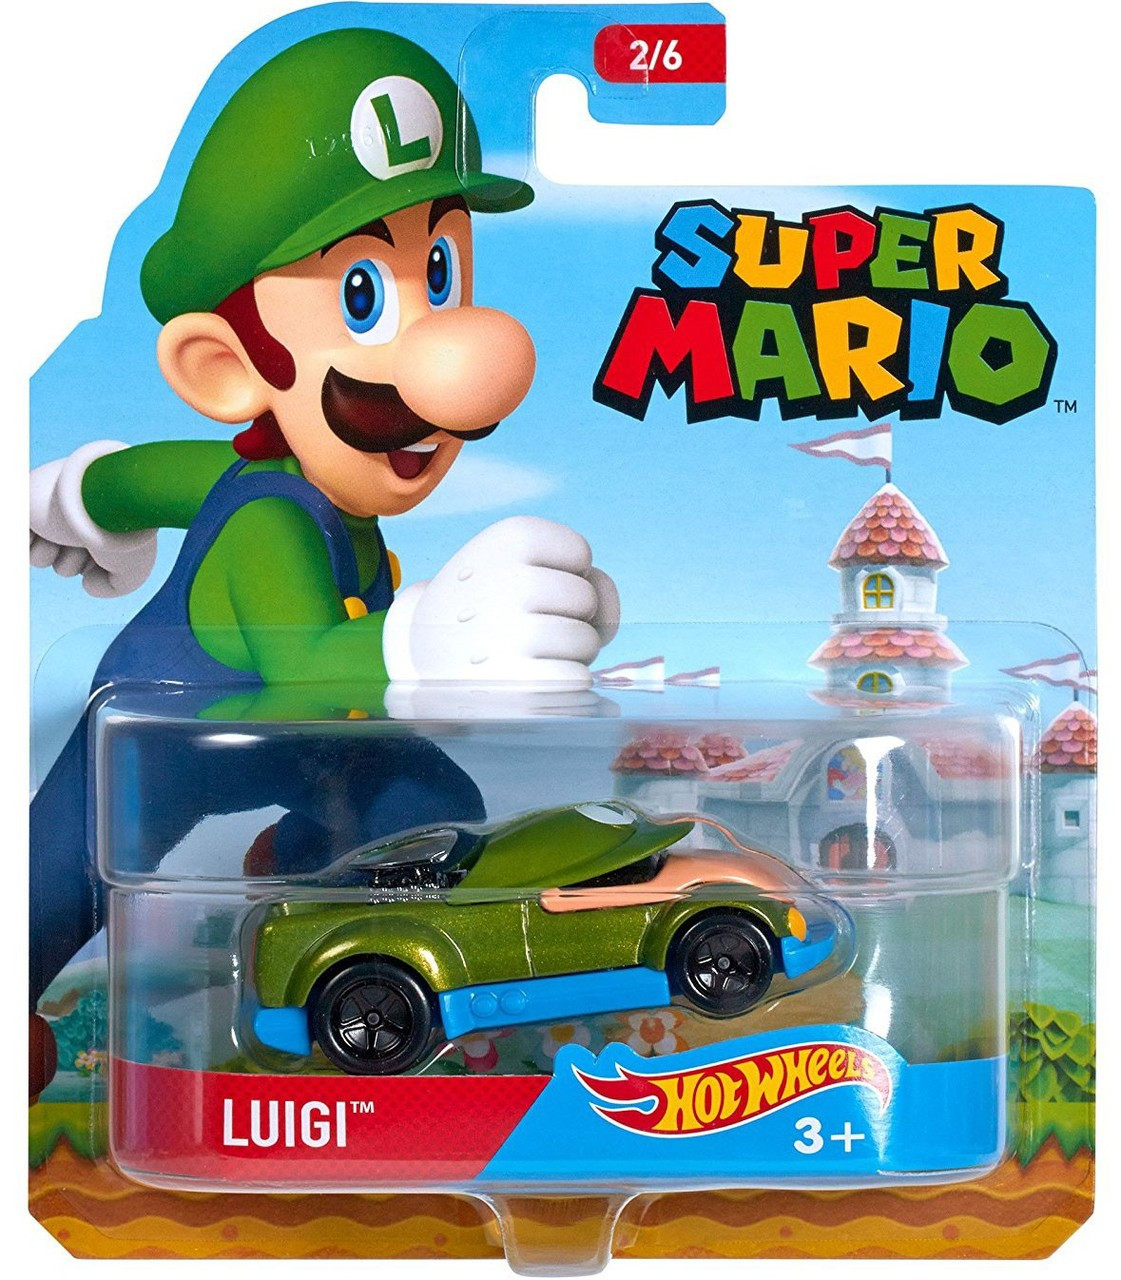 hot wheels super mario luigi 164 diecast character car. Black Bedroom Furniture Sets. Home Design Ideas